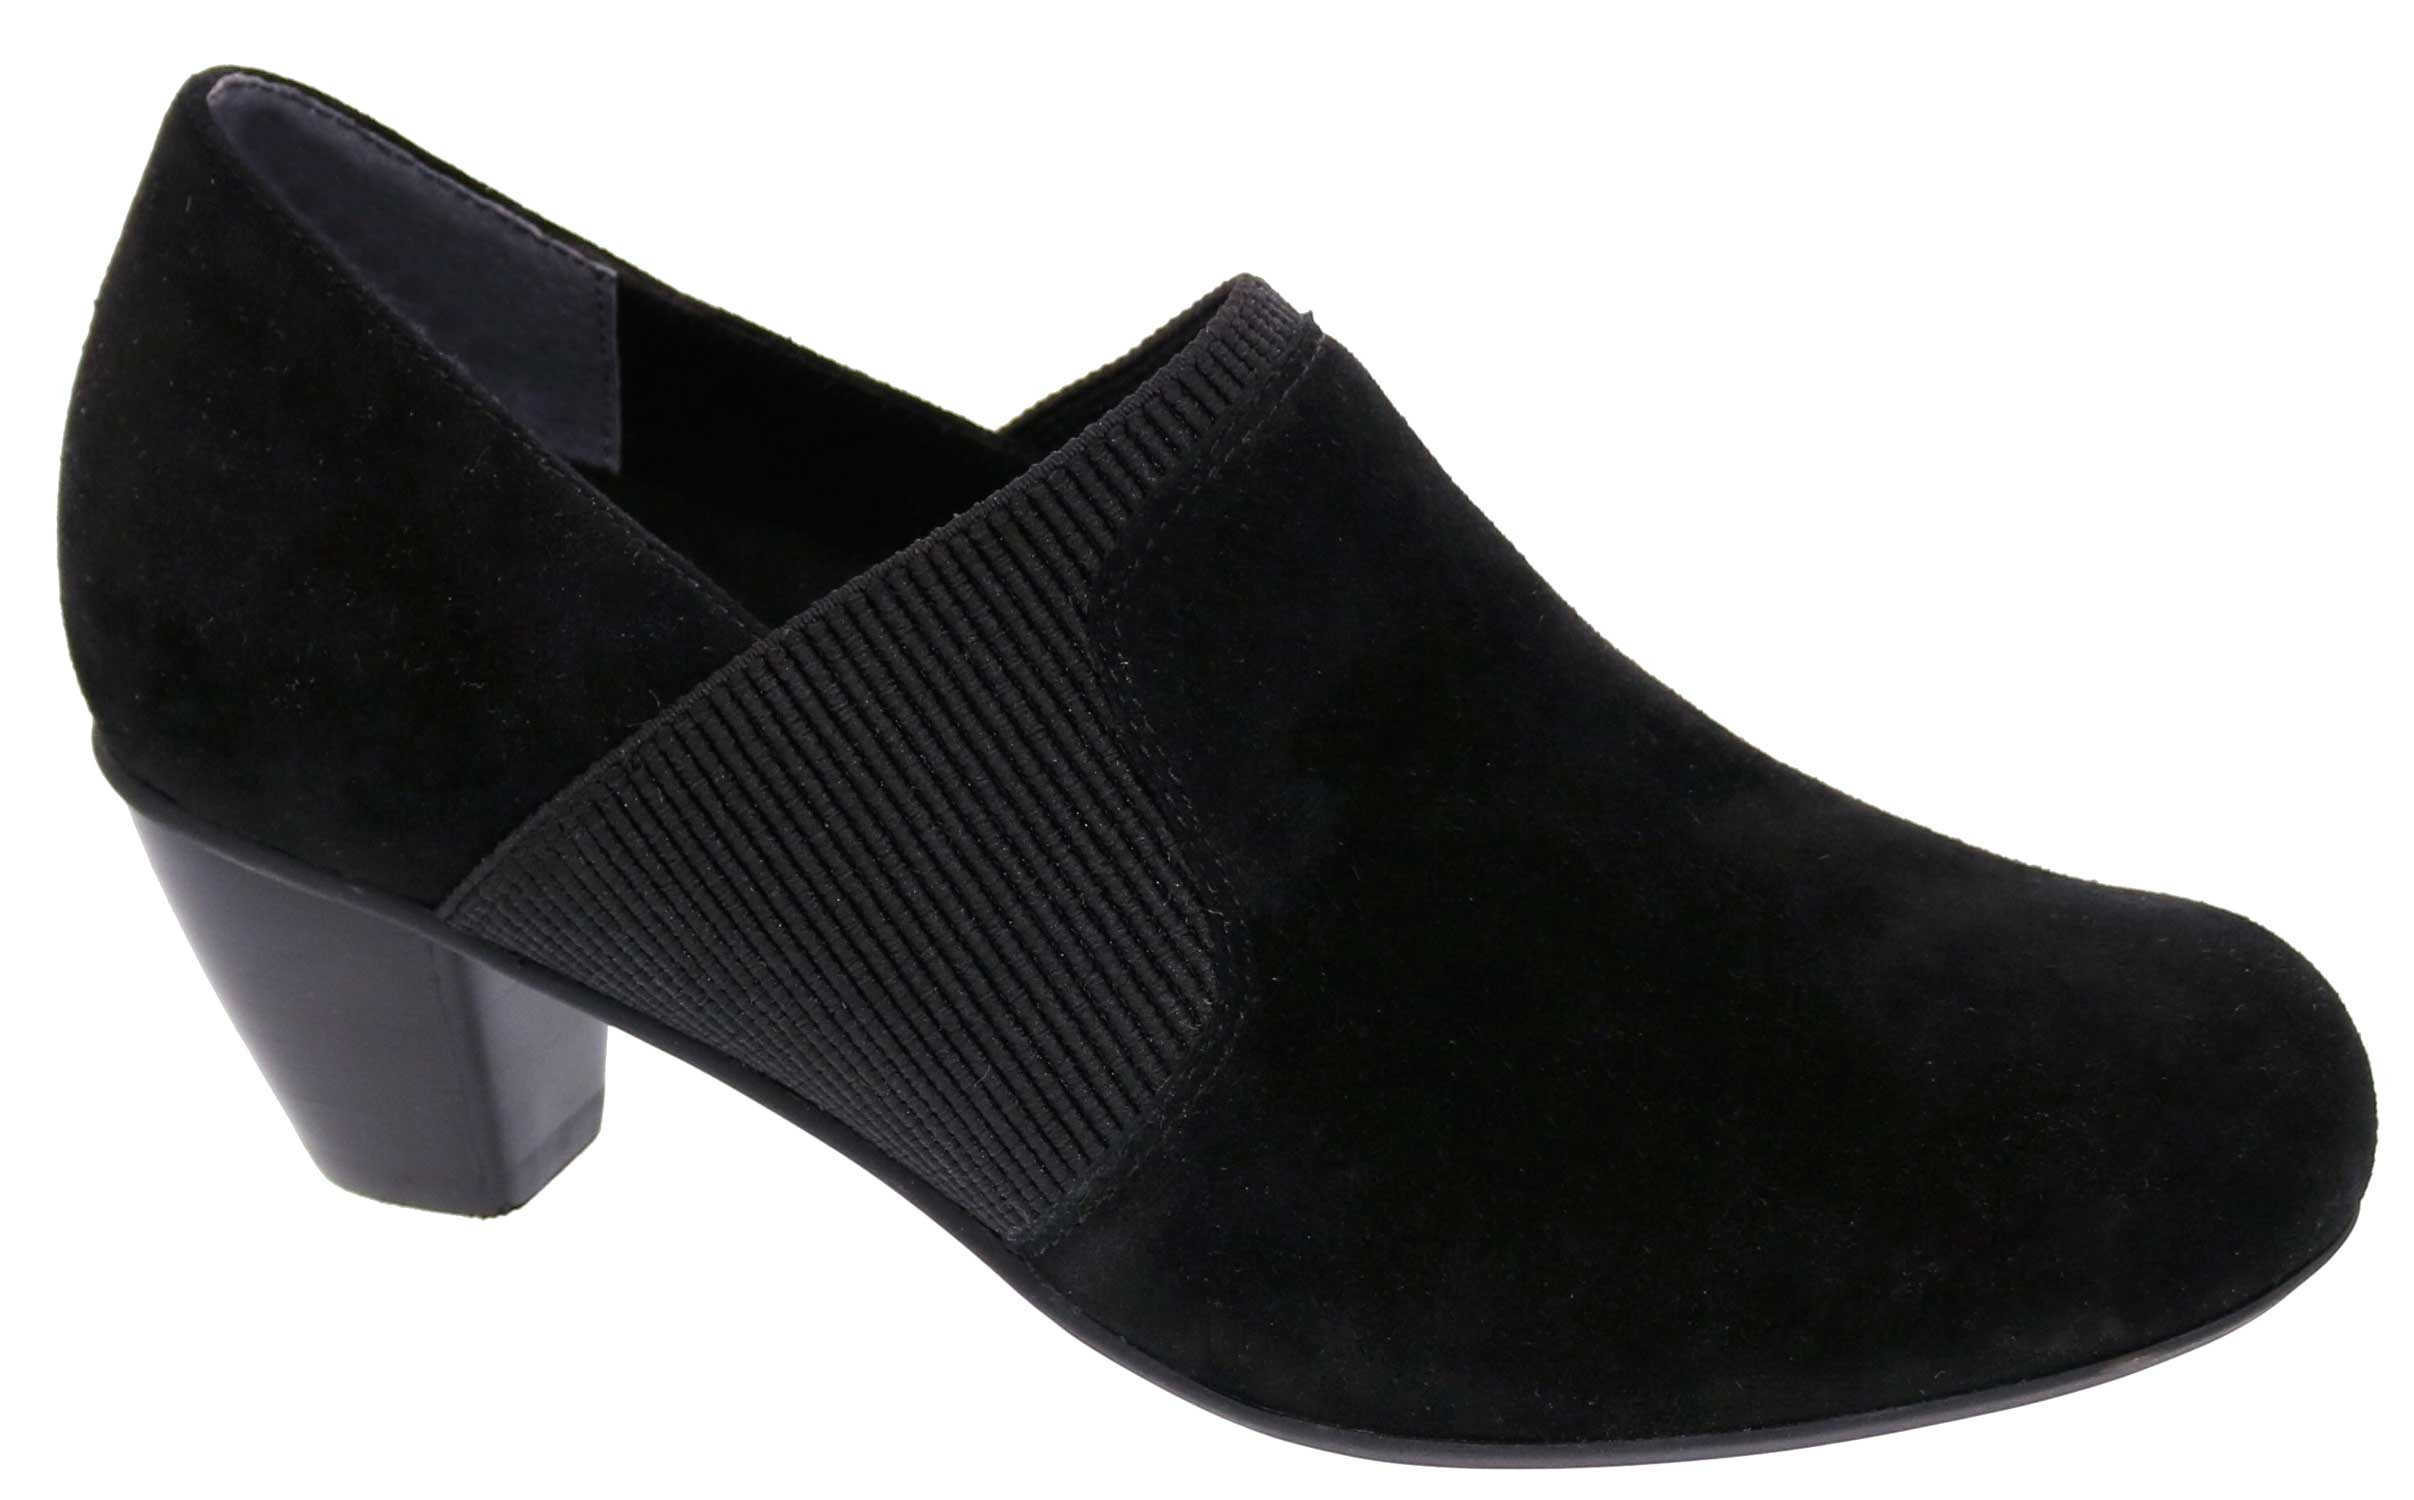 Women's Drew Shoe - Black Suede Pump